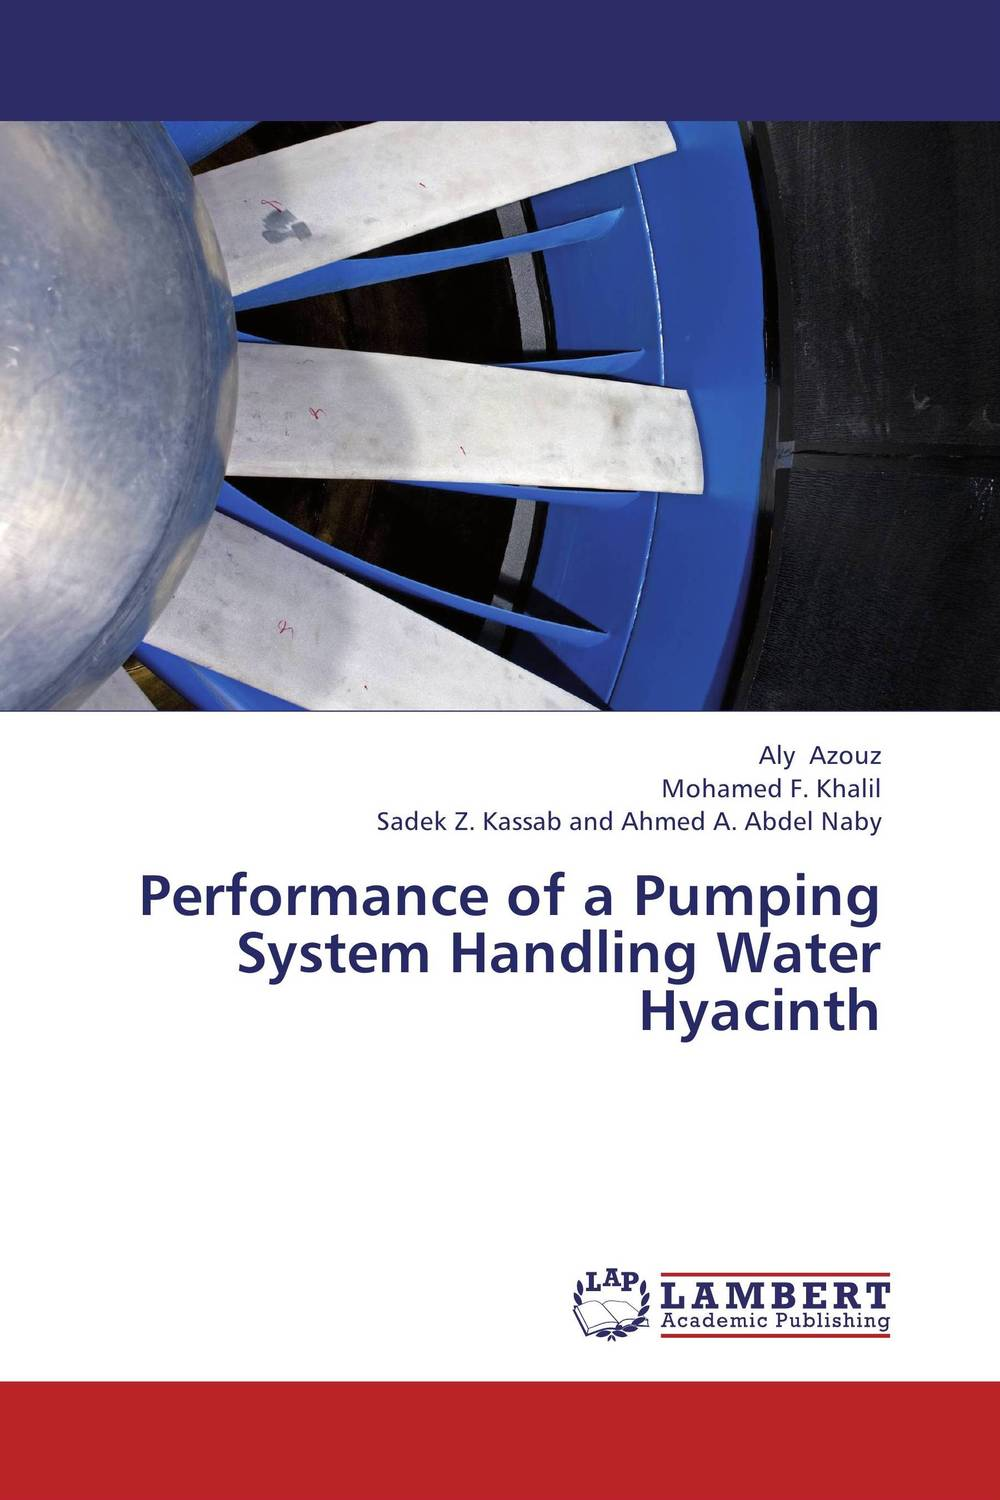 Performance of a Pumping System Handling  Water Hyacinth